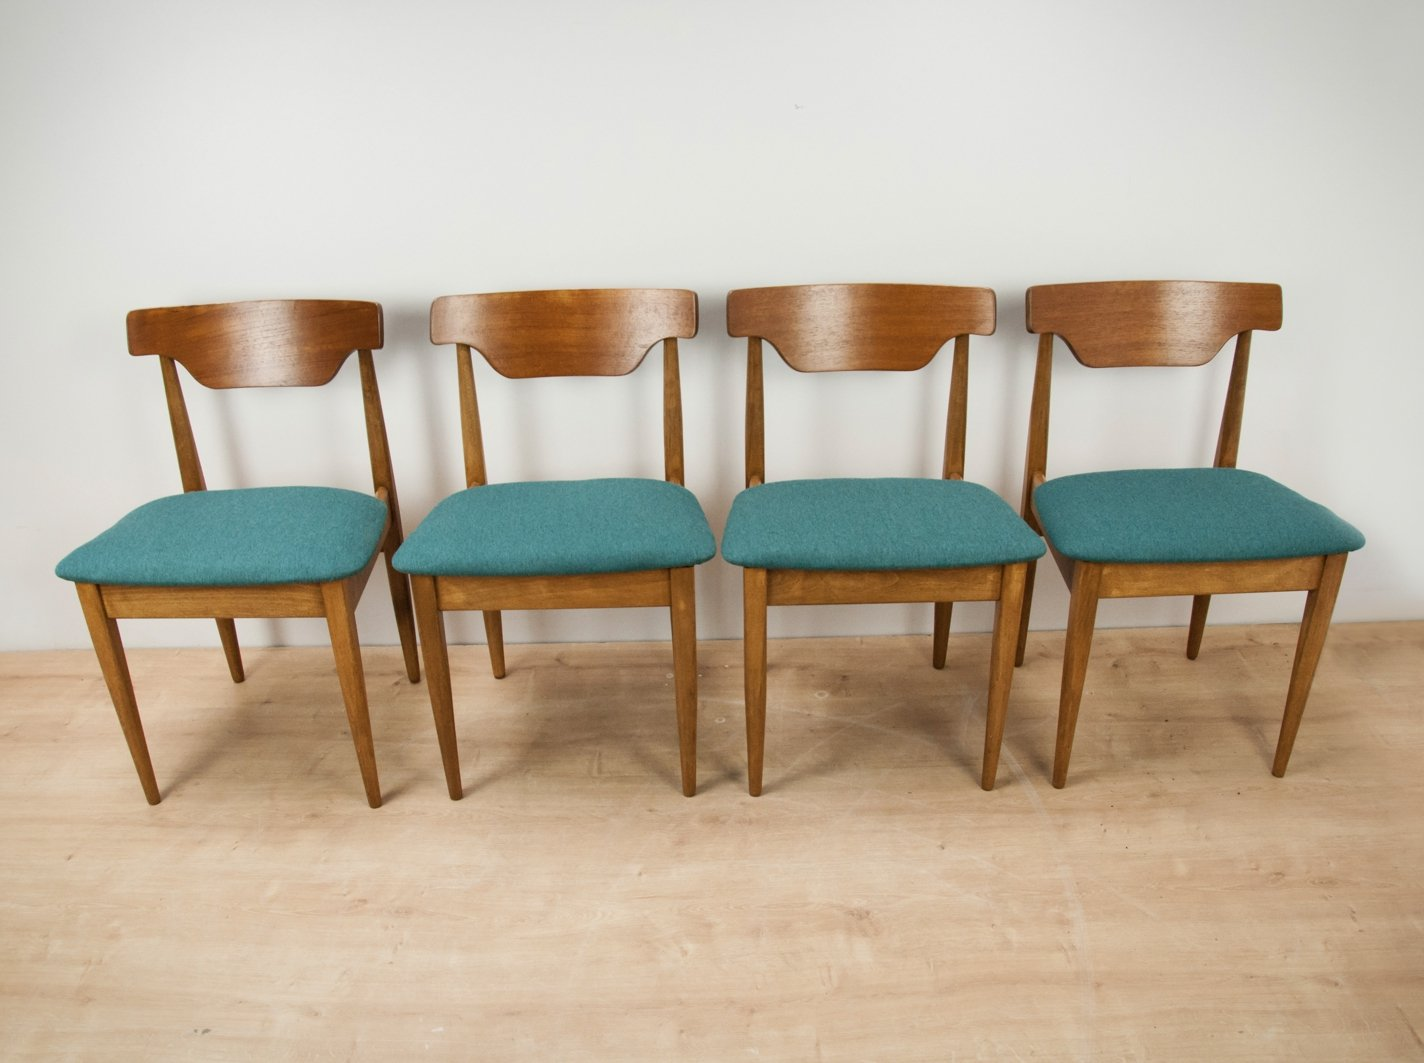 Set Of 4 Vintage Teak Dining Chairs 1960s 107463